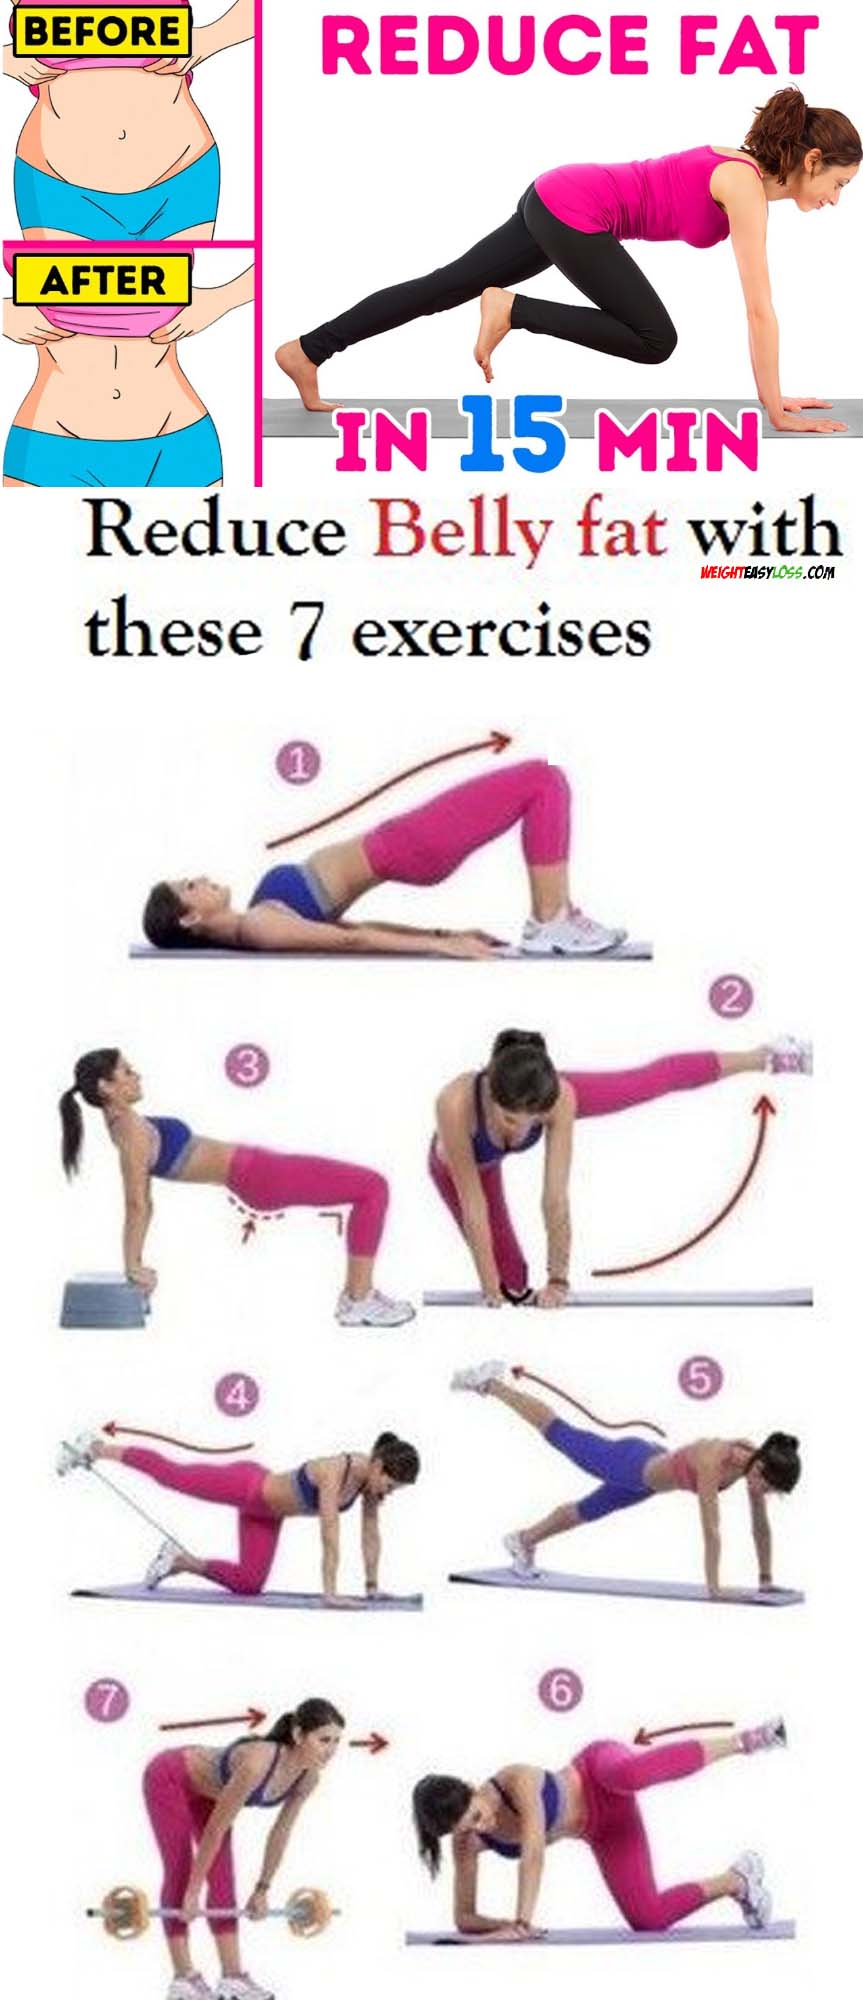 Before & After Belly Fat Exercises